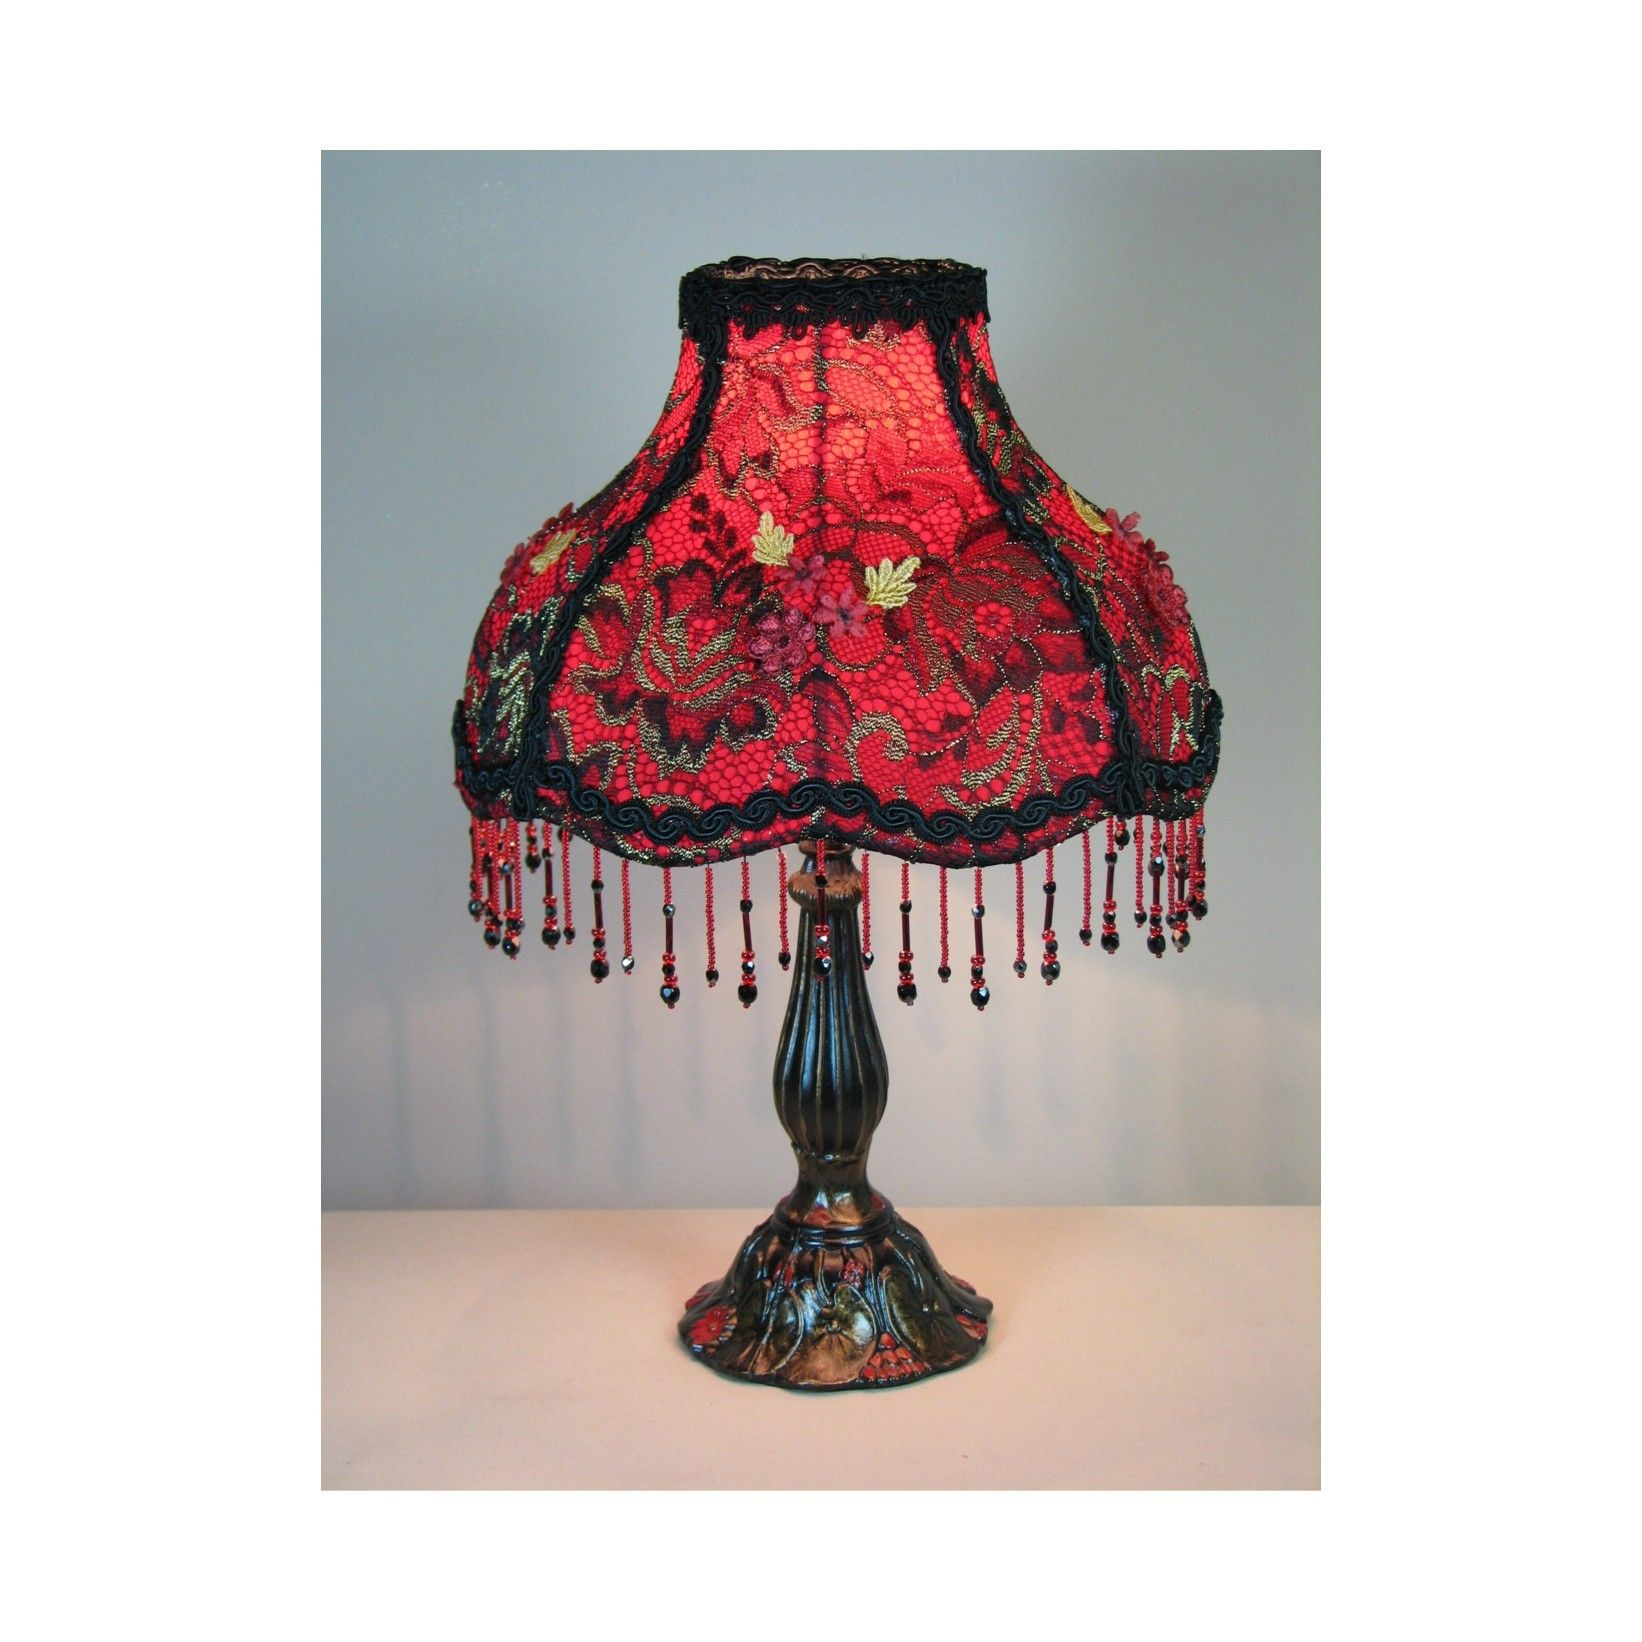 Call Us 01992 554943 Victorian Lampshades The Jace Silk Lamp Shade Psl.  Small Victorian Styletable Lamp With Victorian Lamp Shade Passion S.